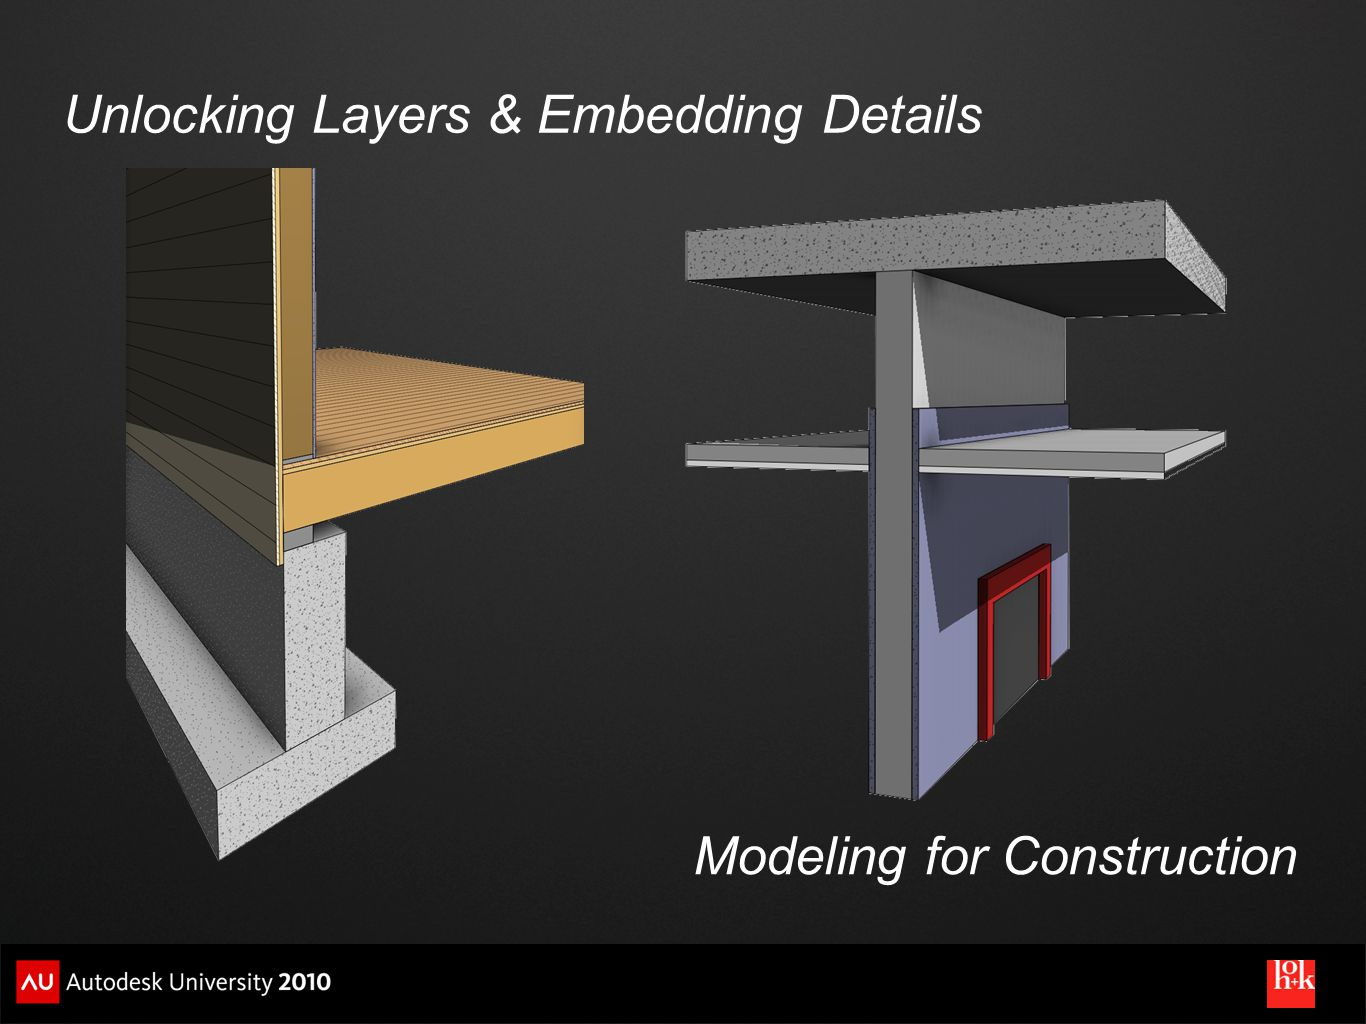 Unlocking Layers & Embedding Details